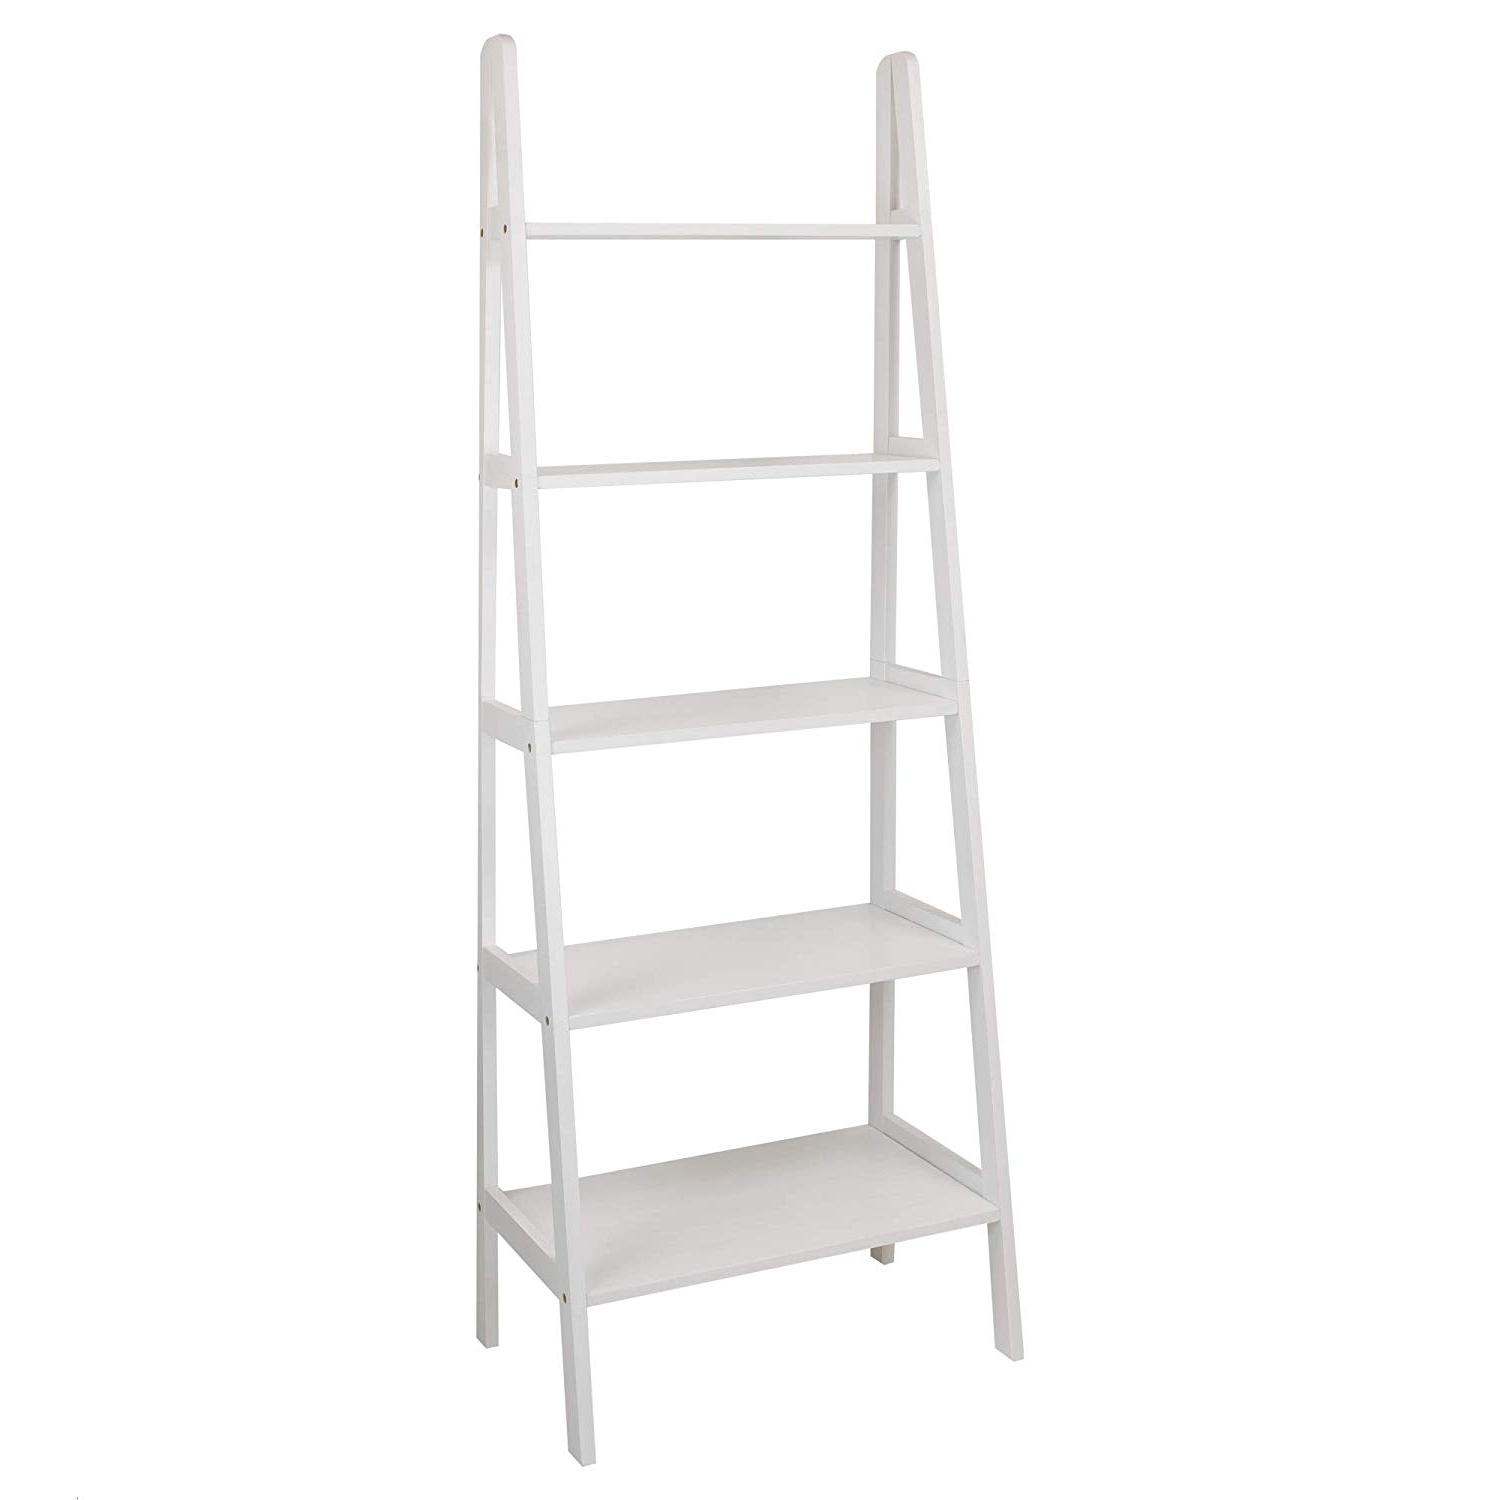 Famous Casual Home 176 51 5 Shelf Ladder Bookcase, White Intended For Rupert Ladder Bookcases (View 6 of 20)